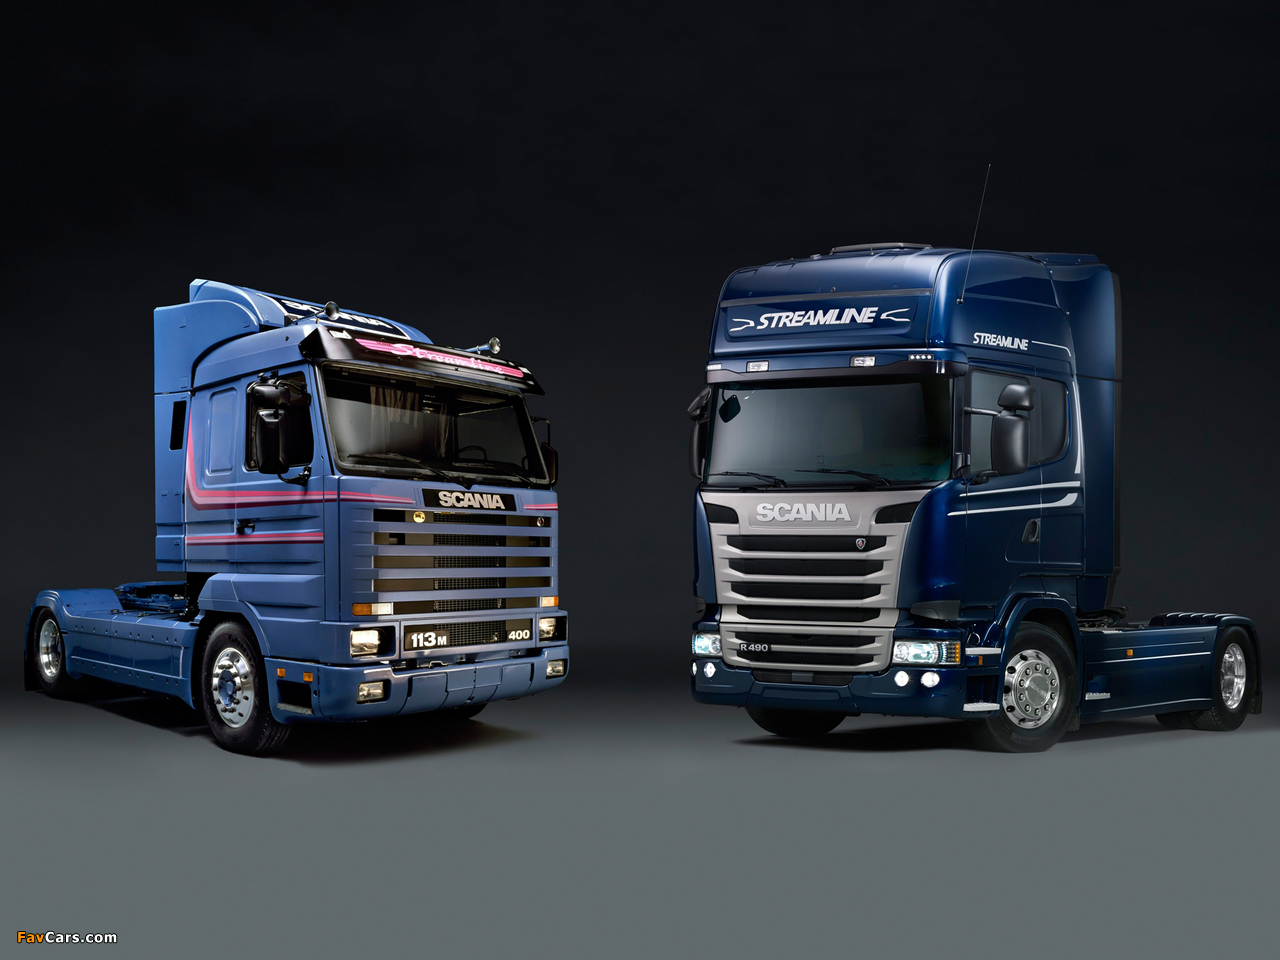 Scania images (1280 x 960)